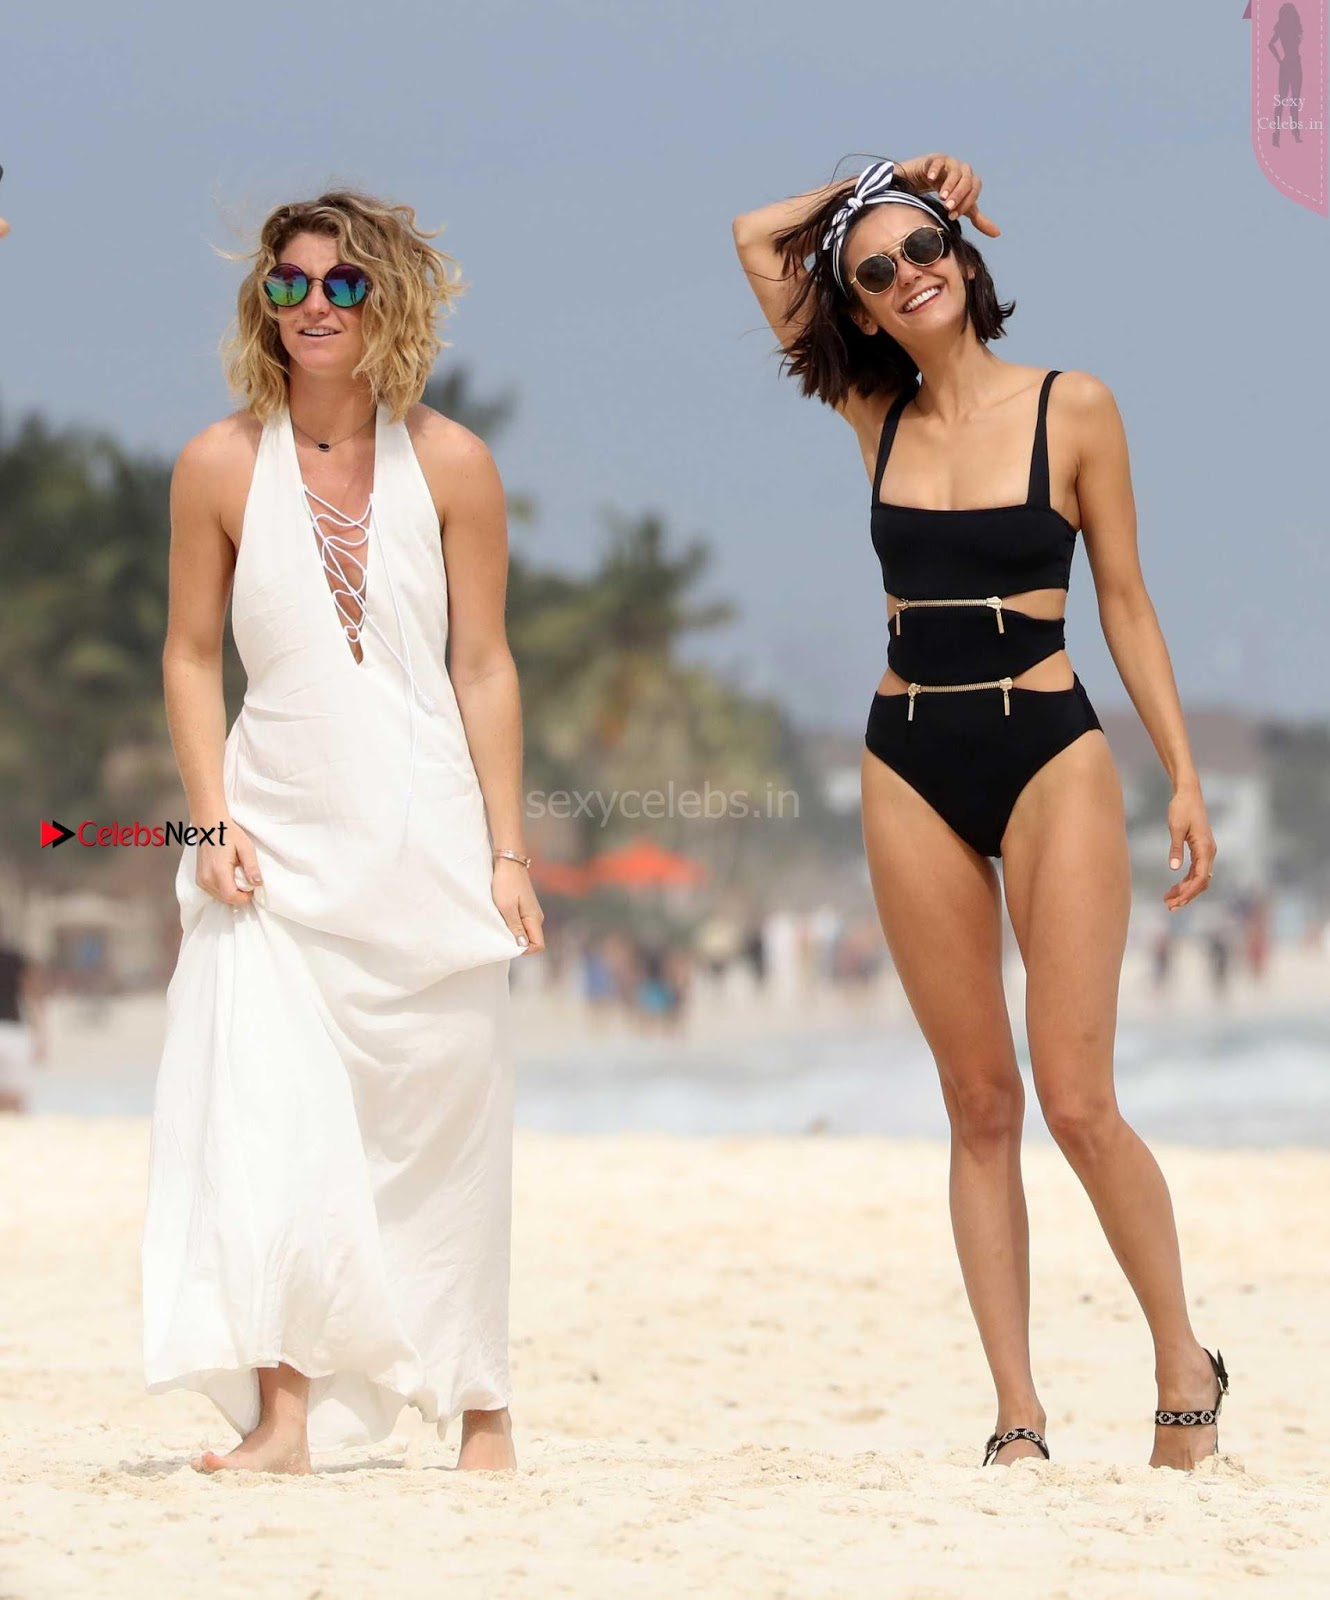 Nina Dobrev in Bikini Playful Pics in bLack Wow at a Beach in Mexico ~ SexyCelebs.in Exclusive